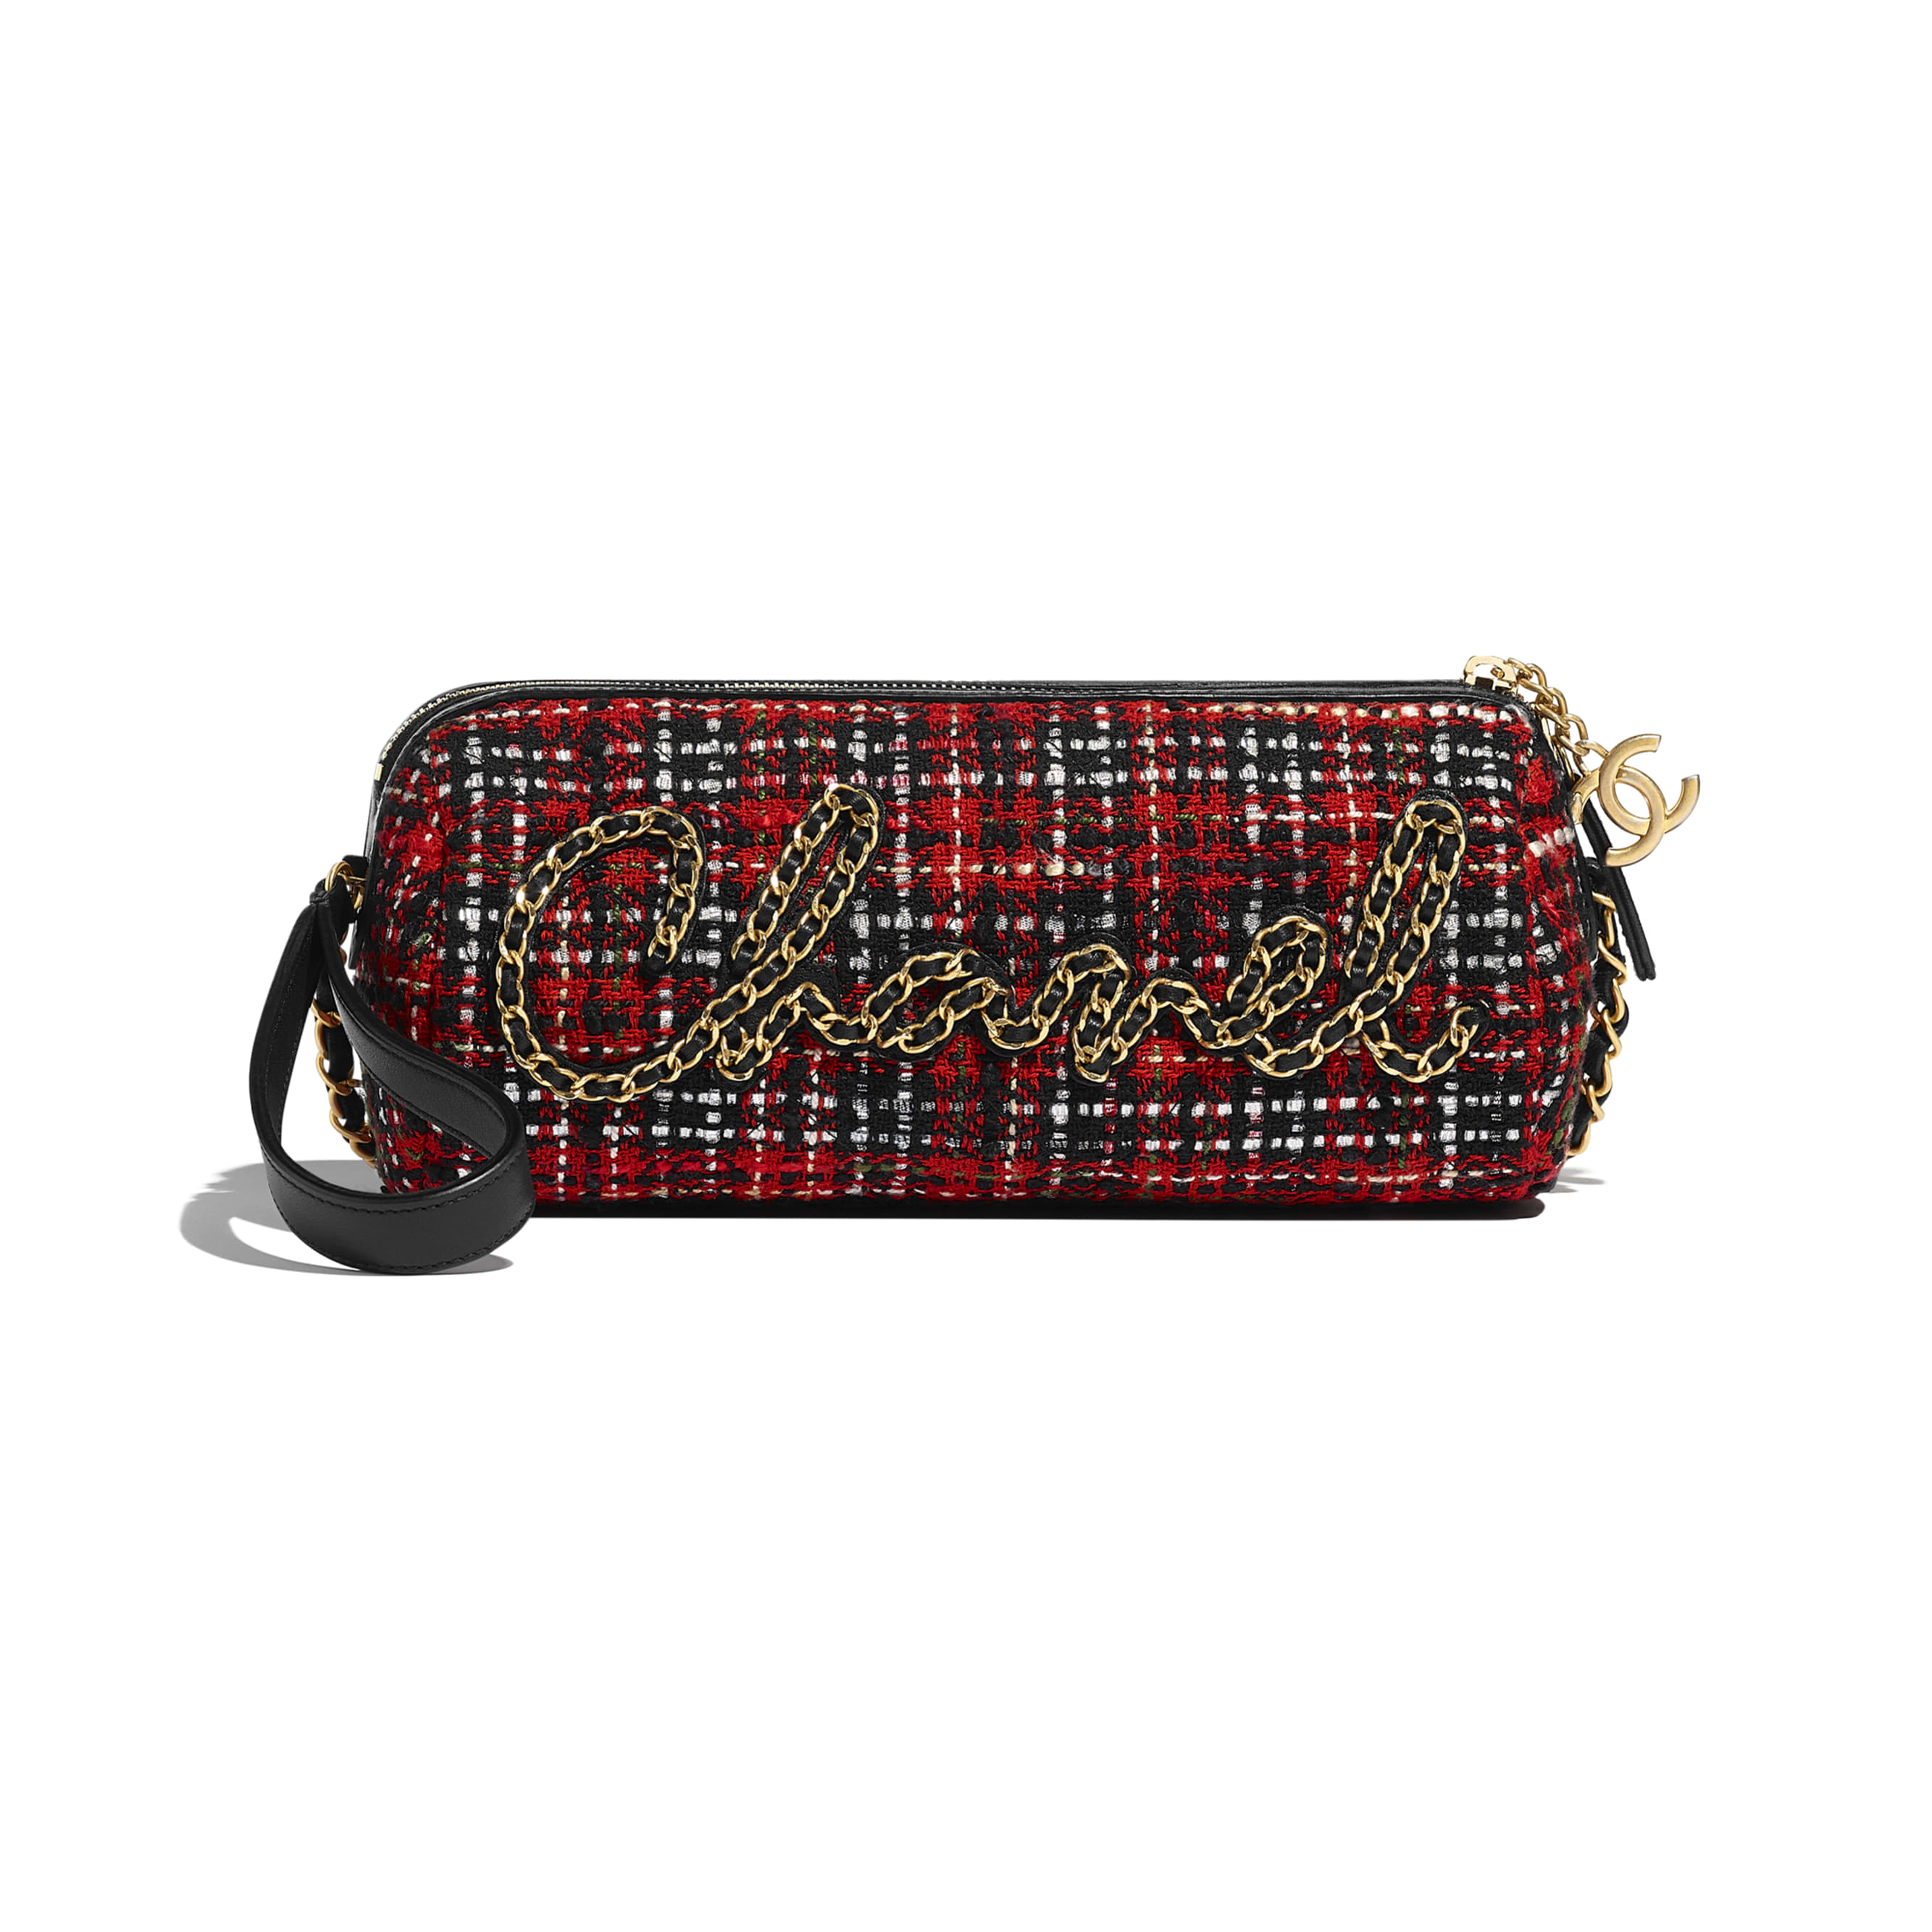 Bowling Bag - Red, Black, White & Green - Tweed, Calfskin & Gold-Tone Metal - CHANEL - Default view - see standard sized version